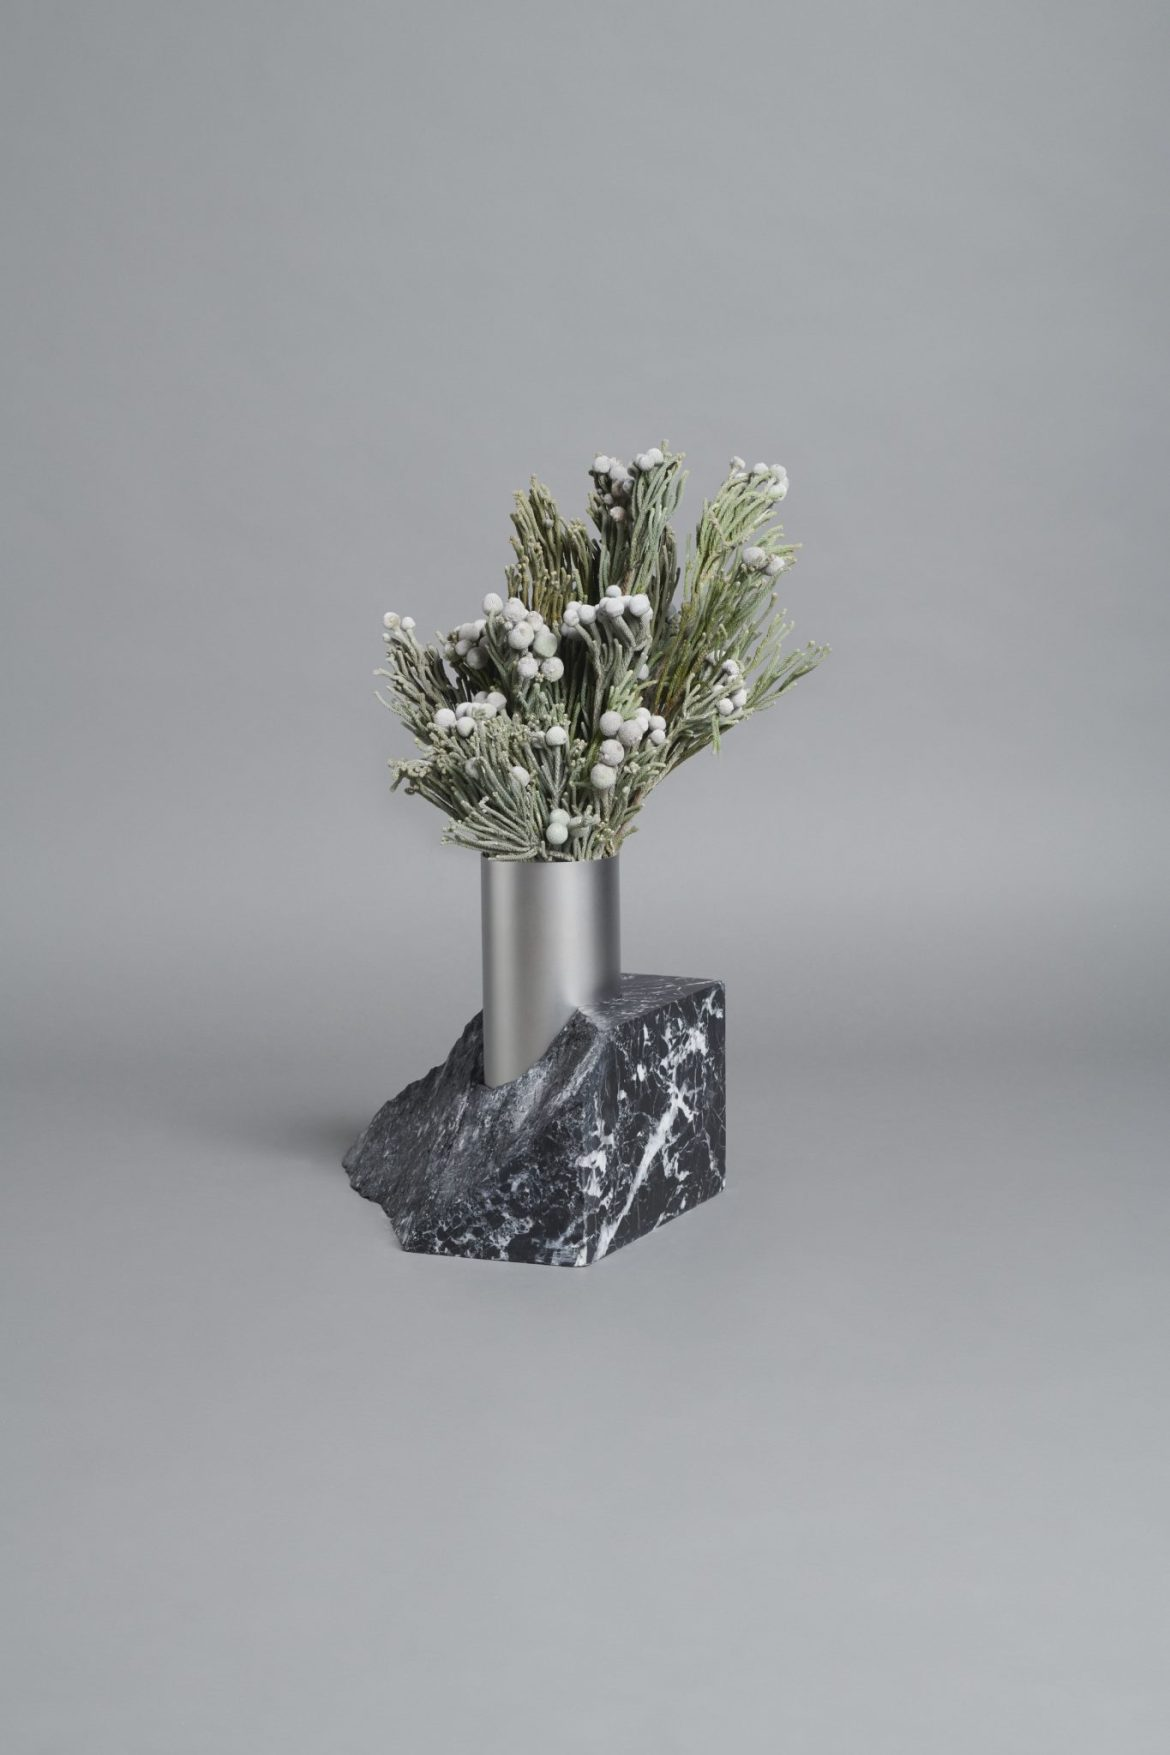 Bloc Studios x Tableau, Minimal black marble and metal vase